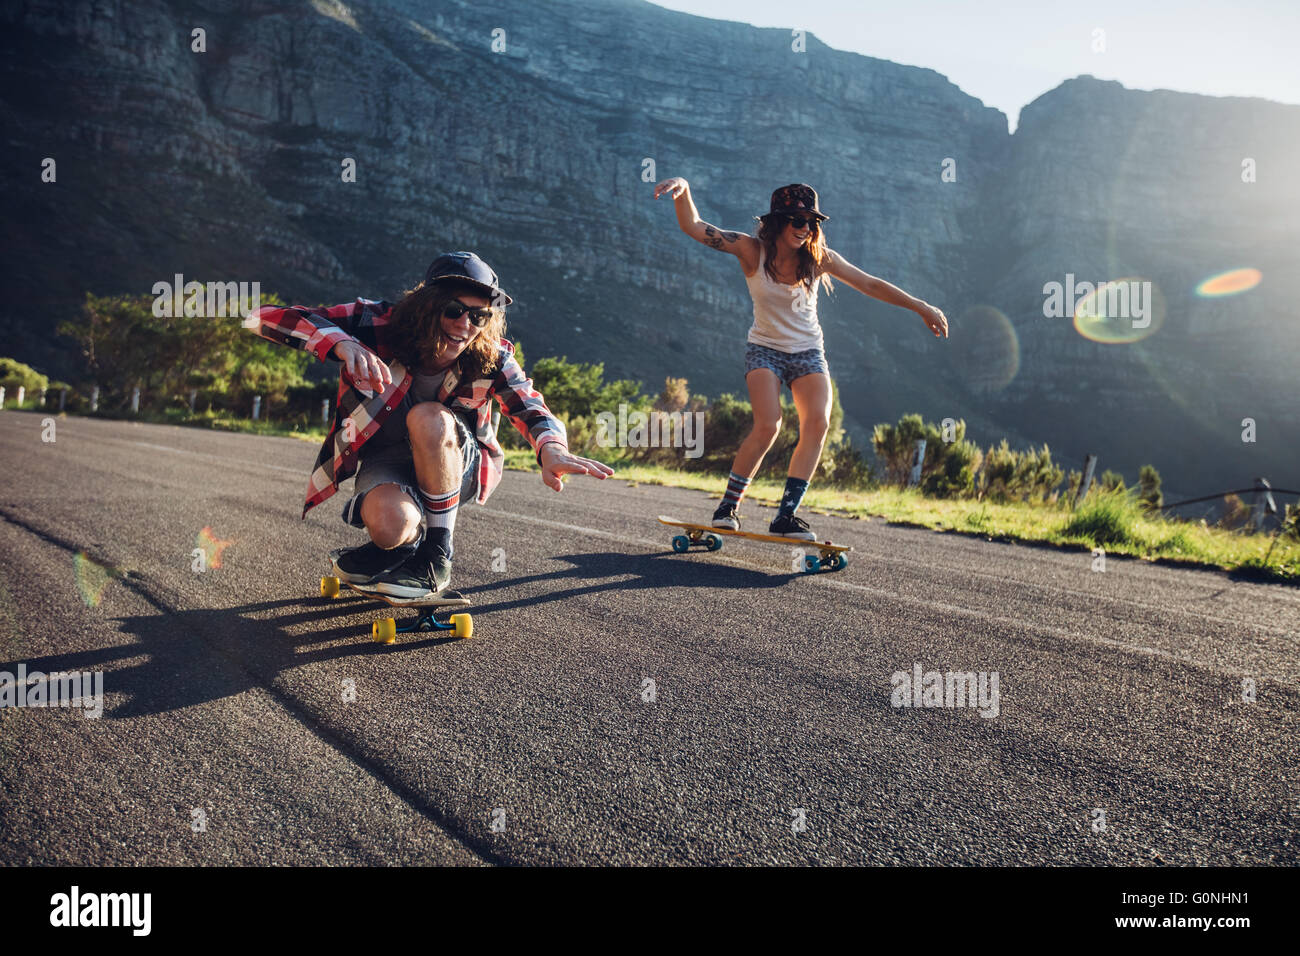 Happy young friends having fun with skateboard. Young man and woman skating together on a sunny day. - Stock Image